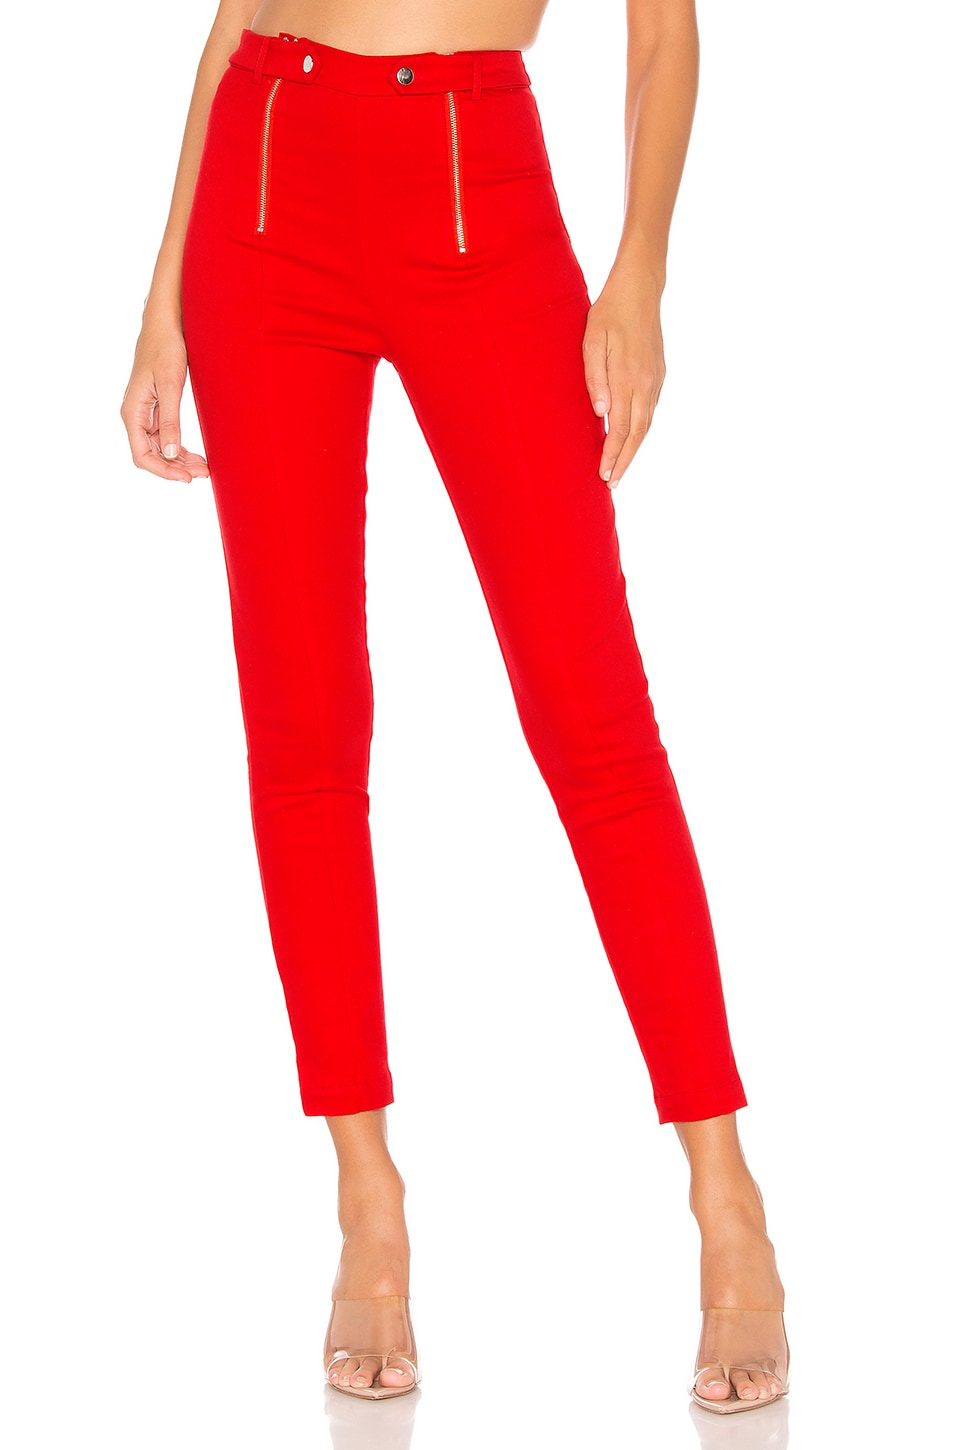 Lovers + Friends Sara Legging in Red